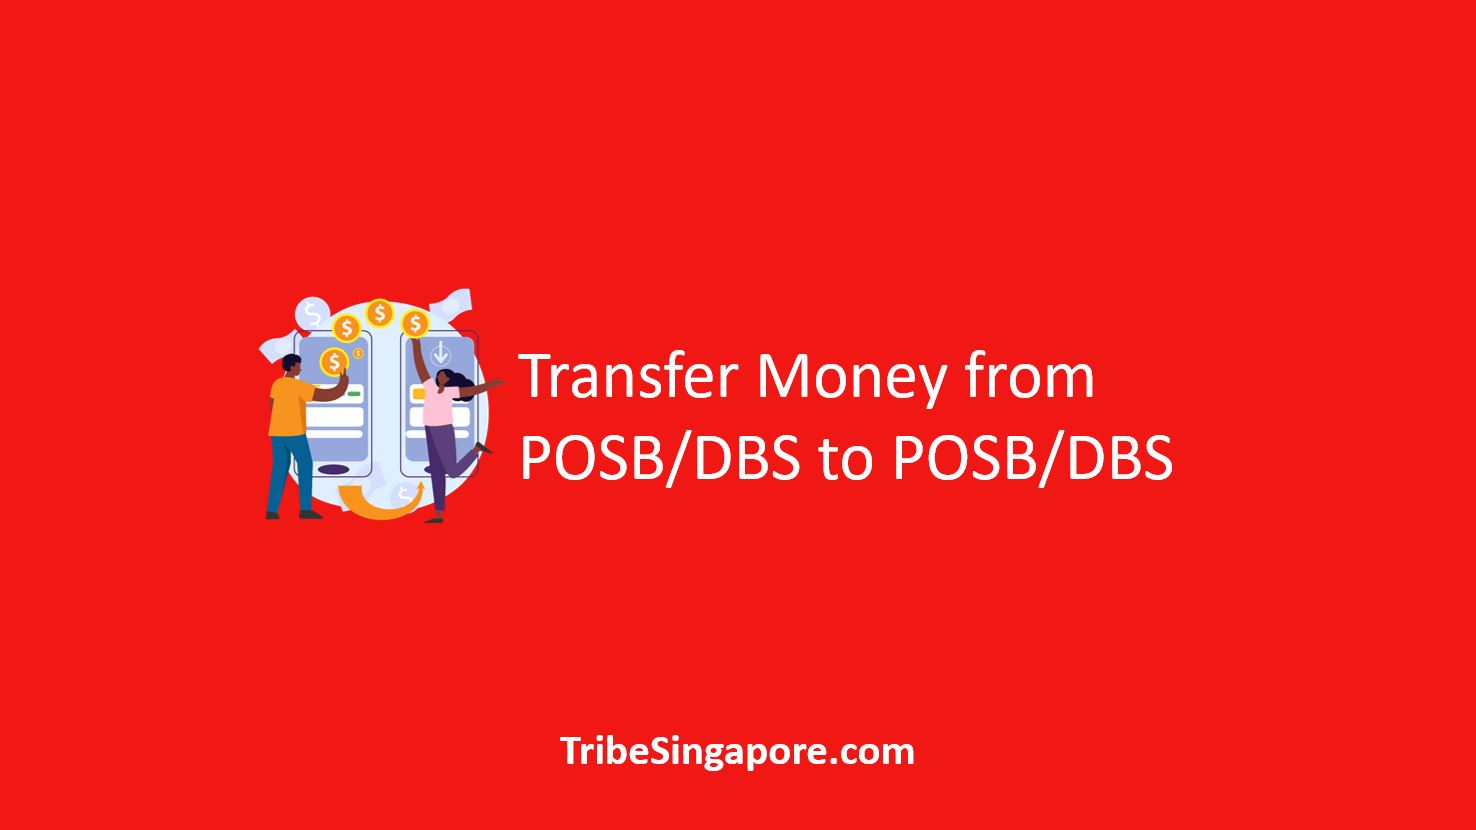 How to Transfer Money from POSB/DBS to POSB/DBS